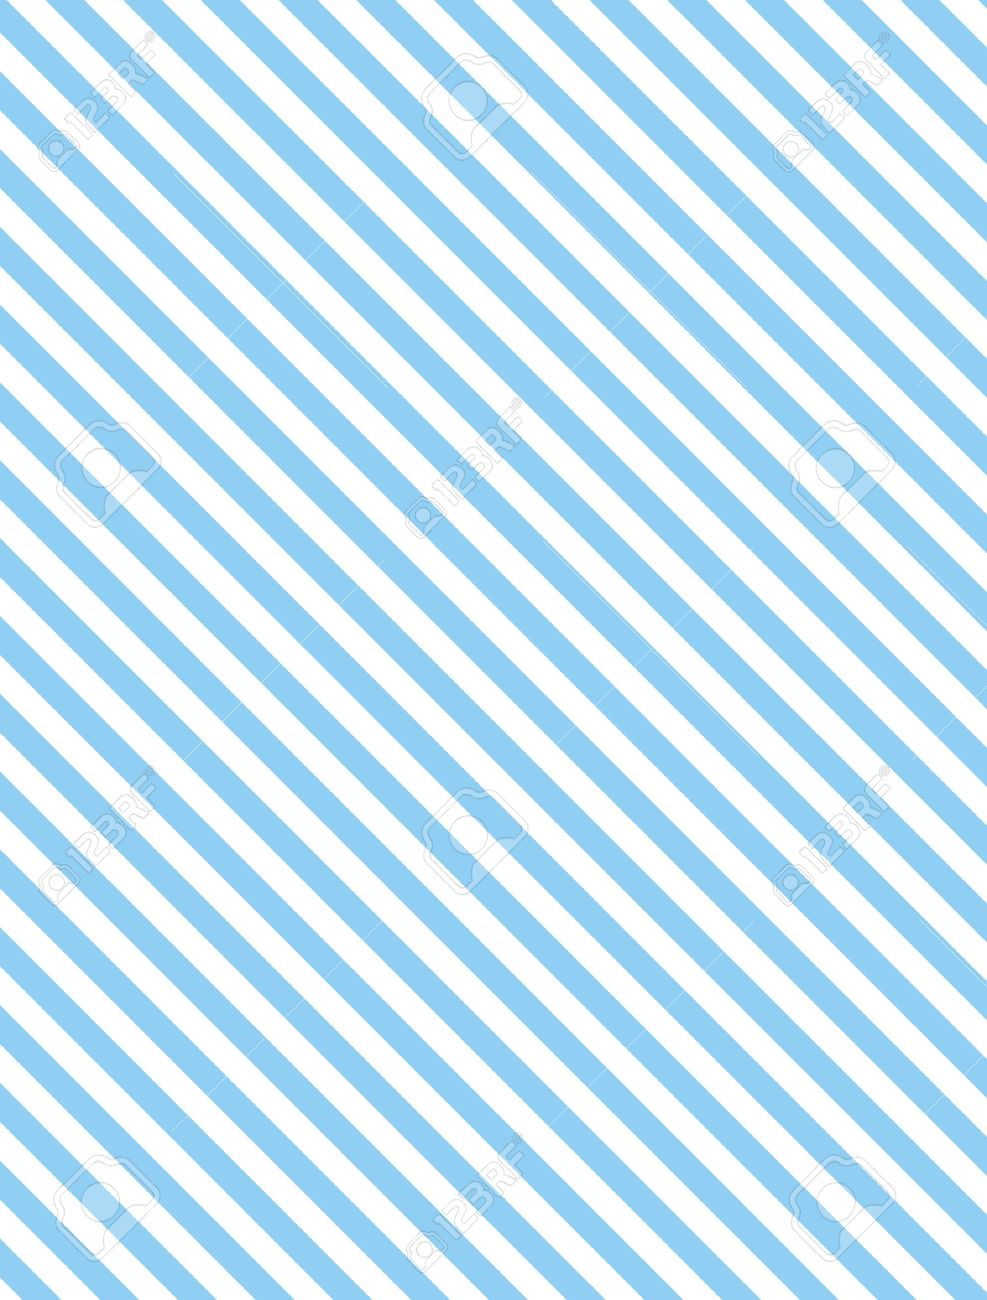 Blue striped background clipart svg download Seamless, Continuous, Diagonal Striped Background In Blue And - 1300 ... svg download